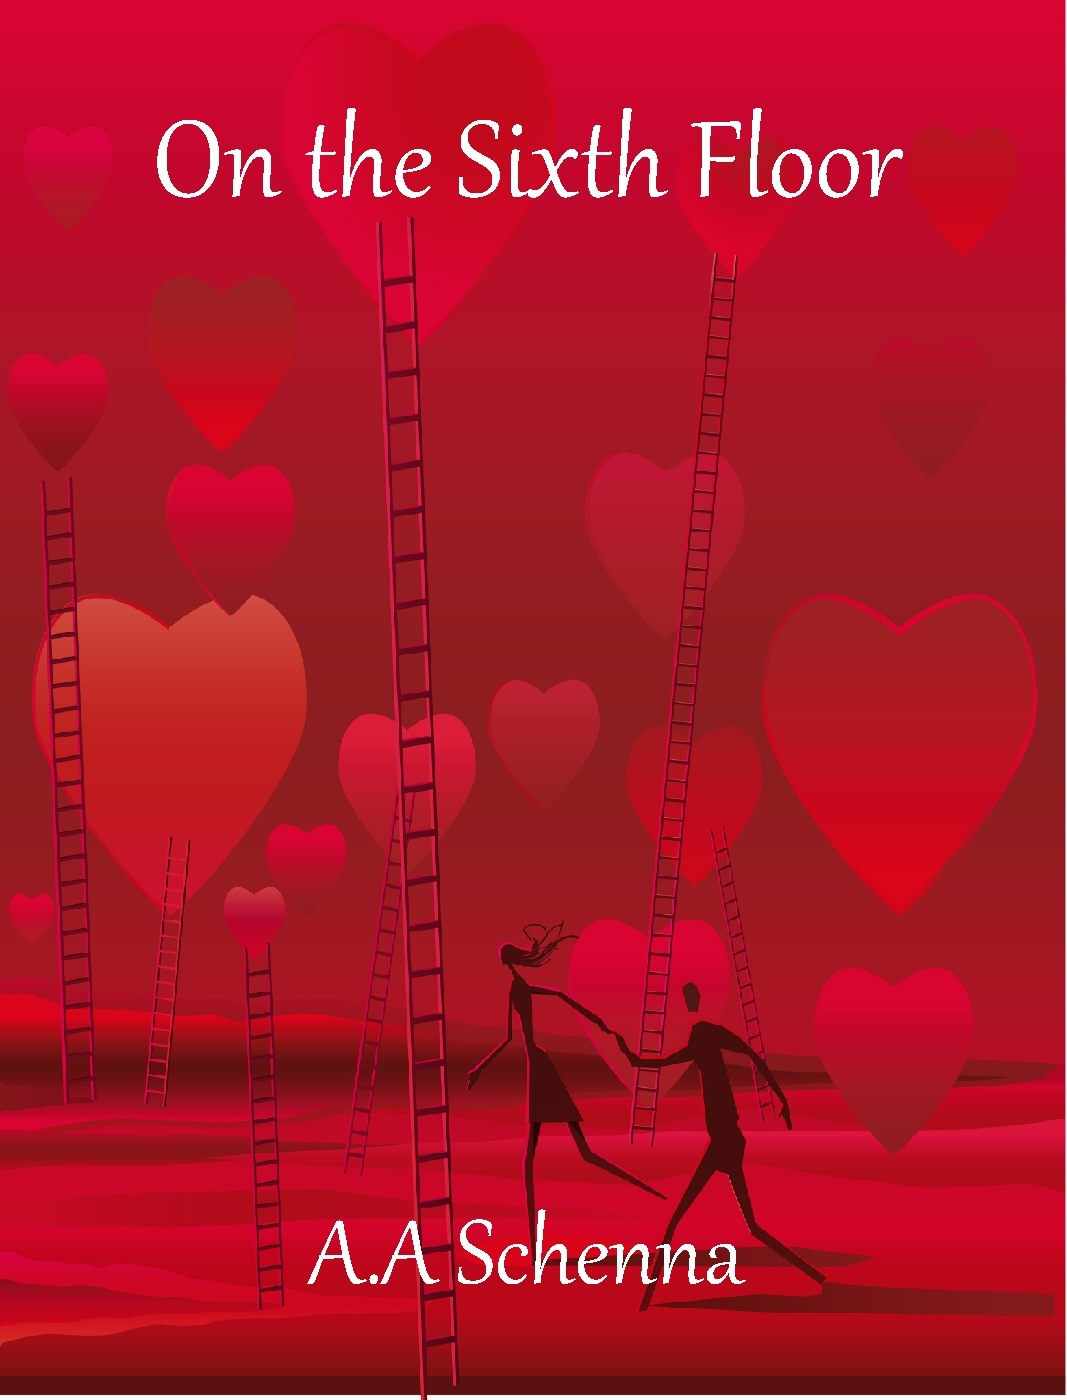 On the Sixth Floor  by  A.A. Schenna